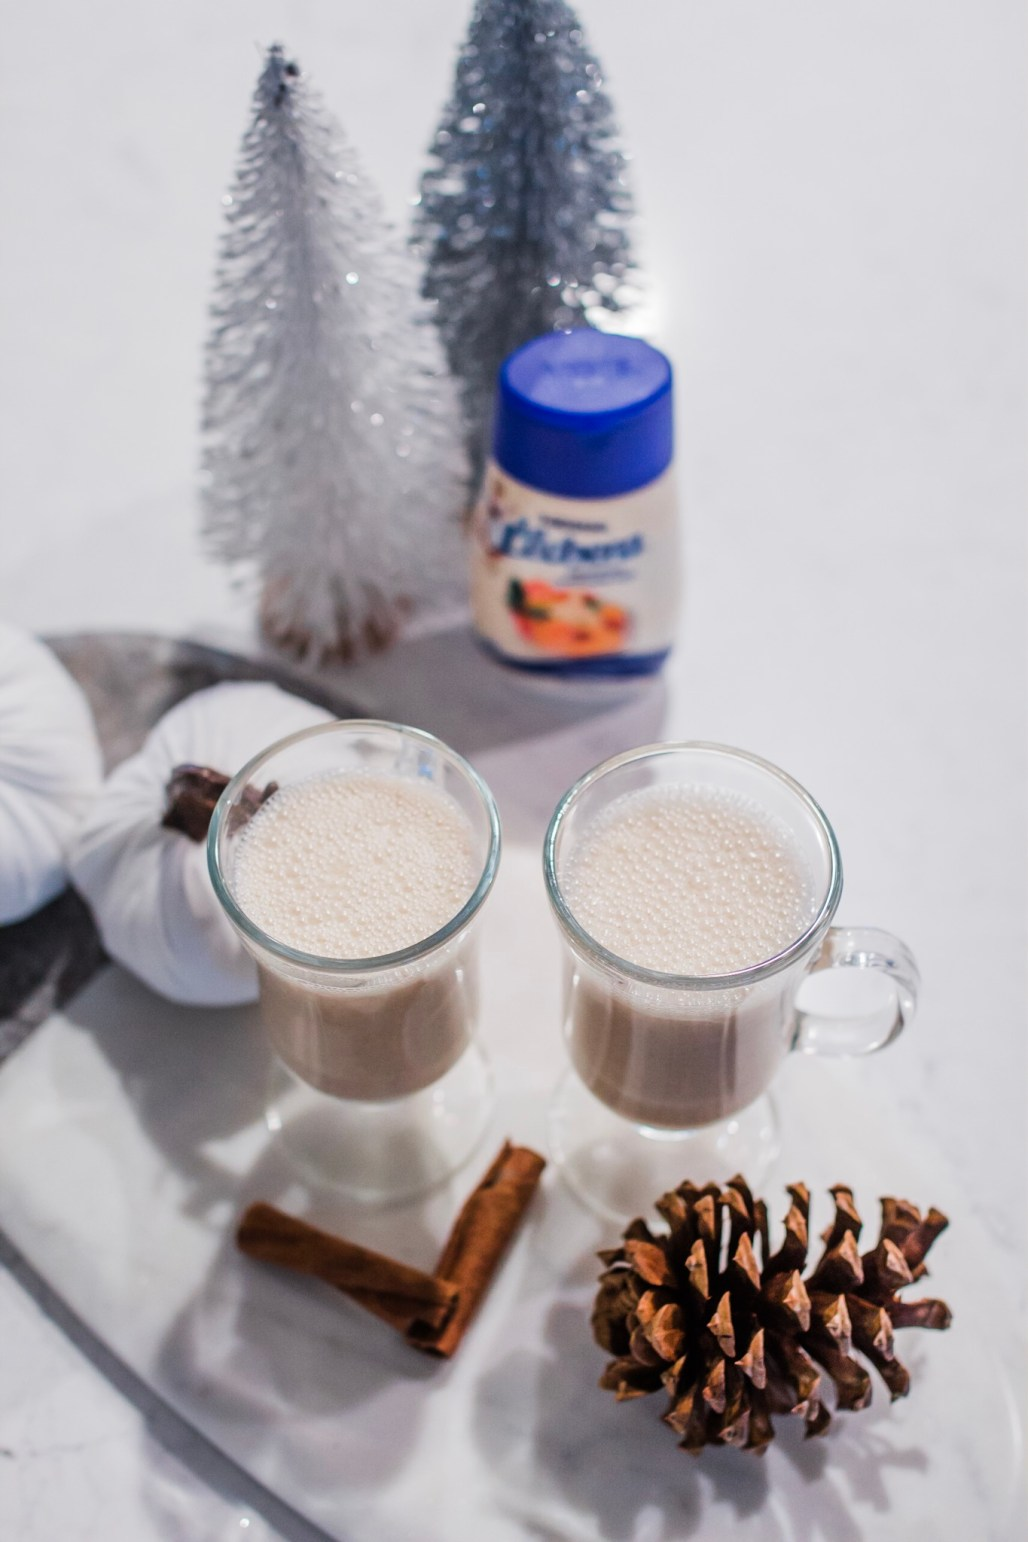 hispanic holiday traditions, spiked coquito recipe, puerto rican eggnog easy recipe with La Lechera